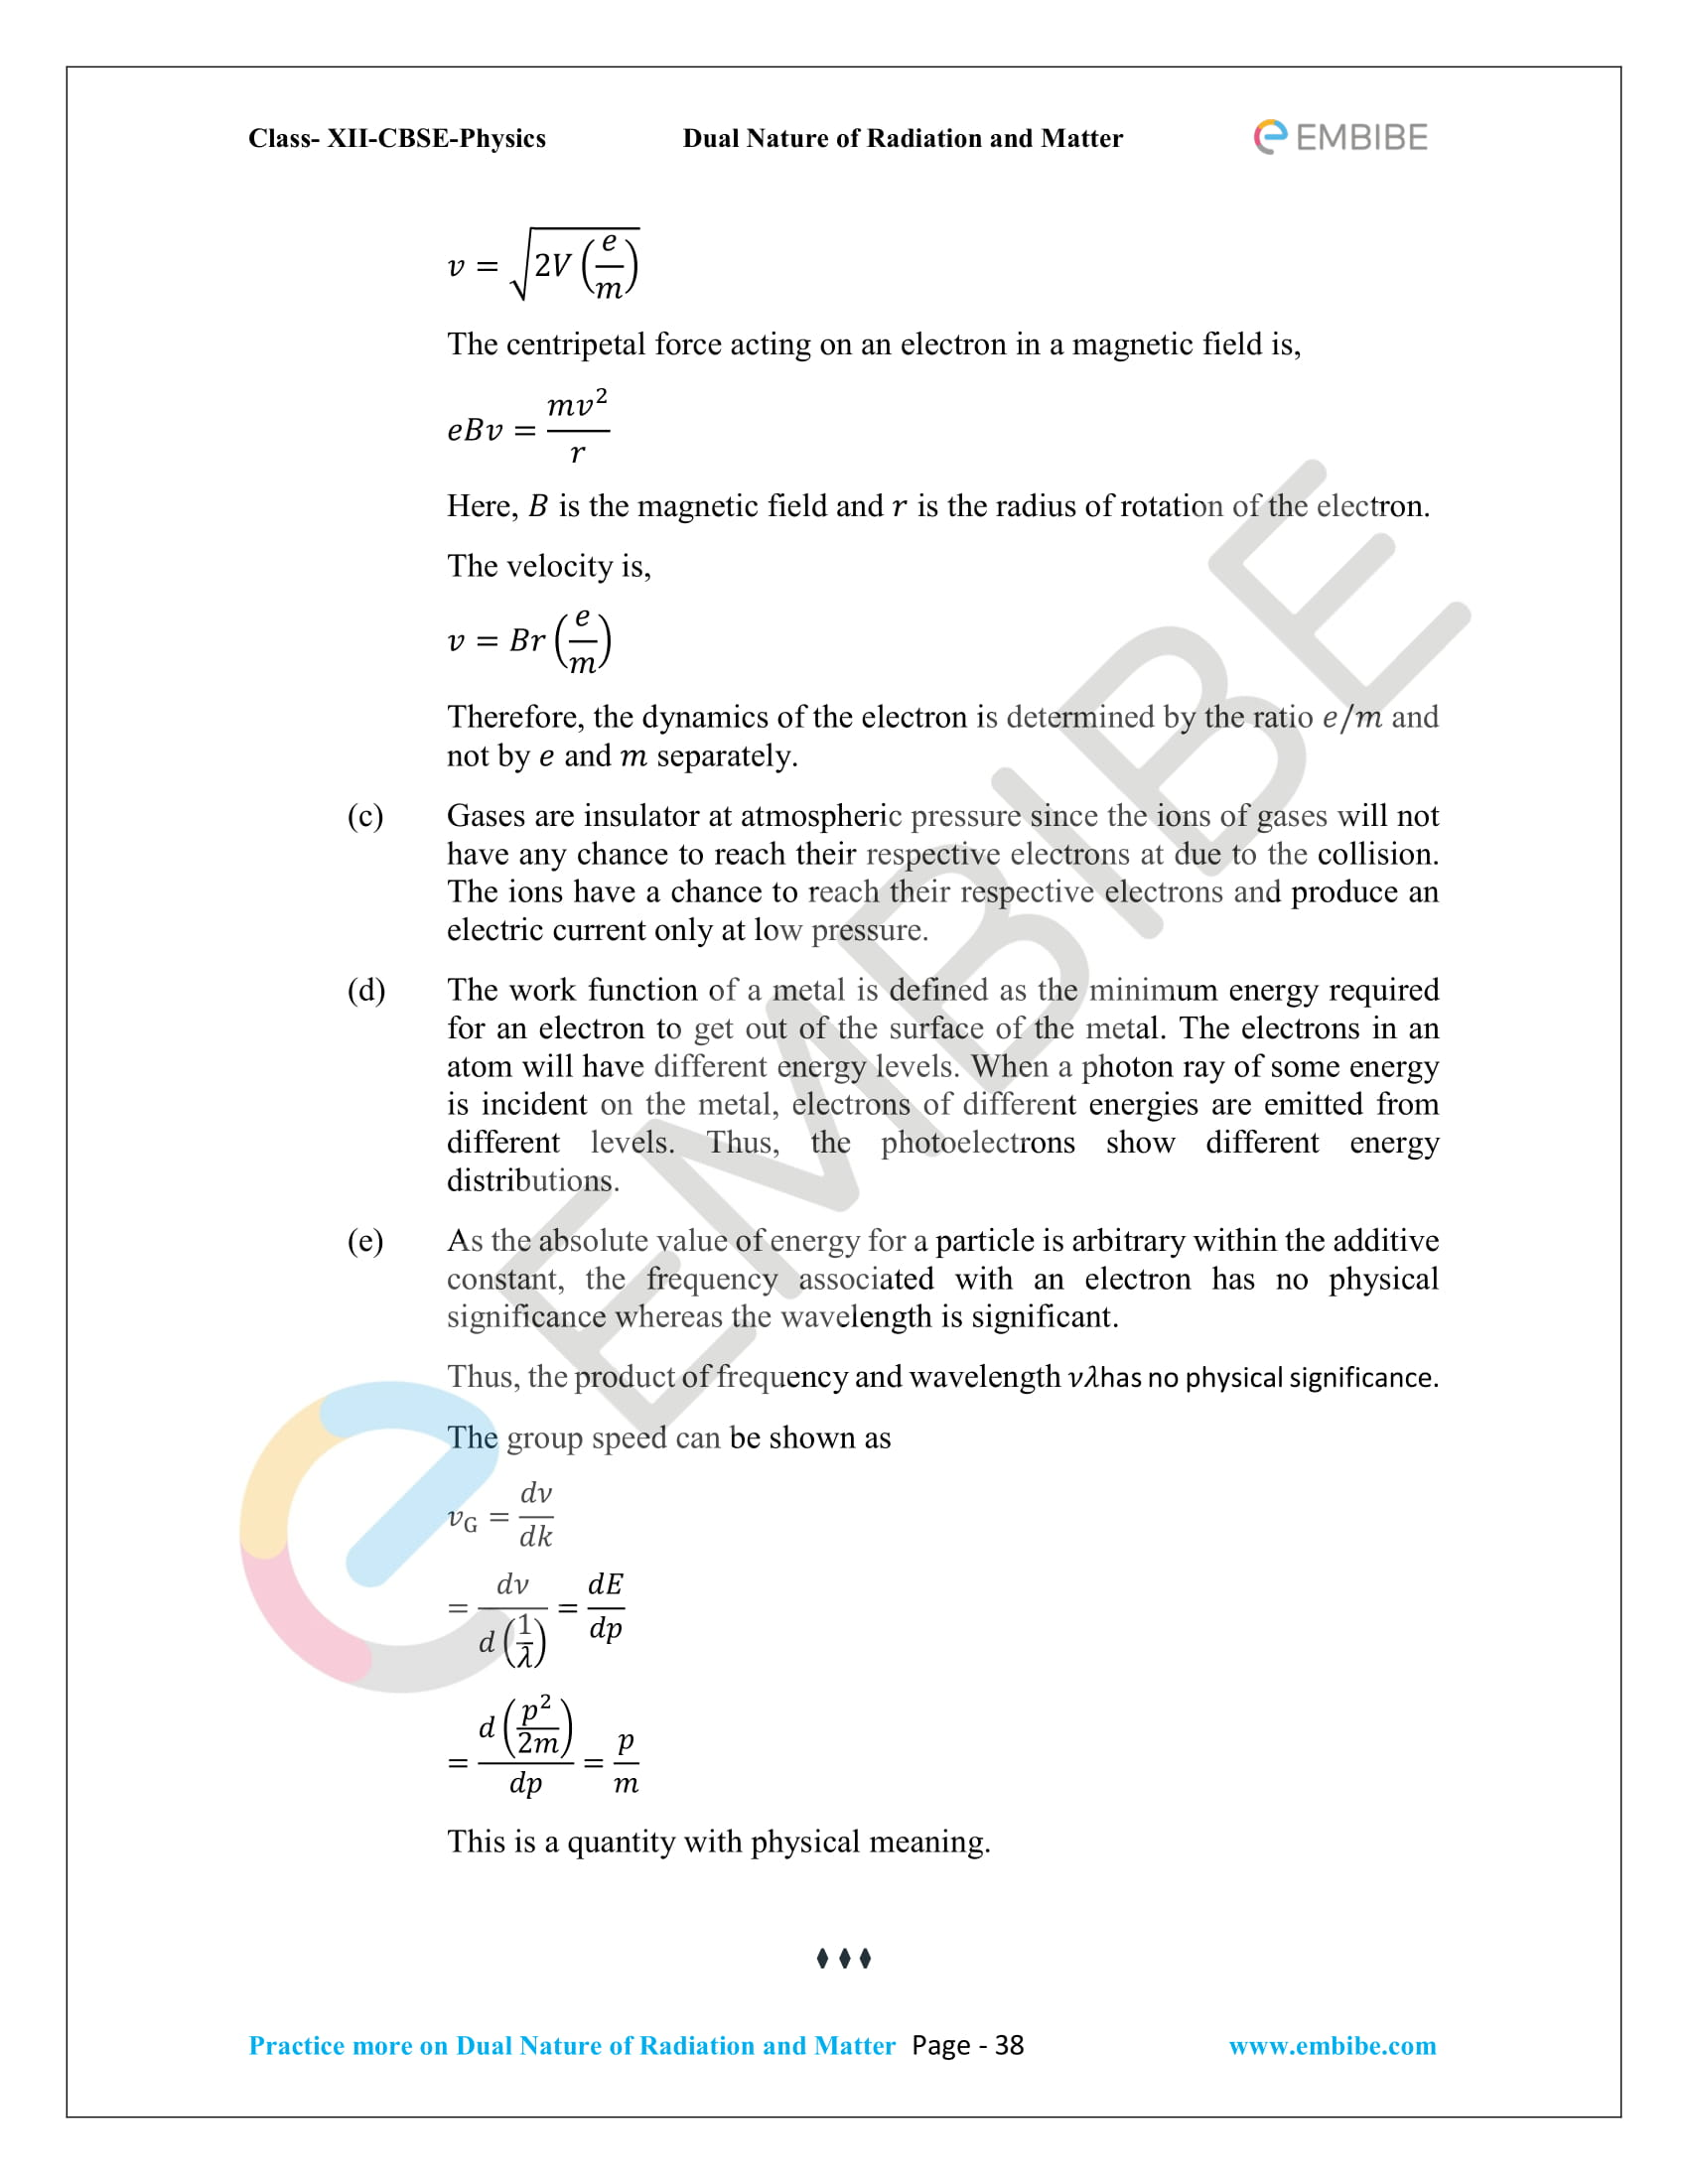 NCERT_Grade 12_Physics_Ch_11_Dual Nature of Radiation and Matter-38